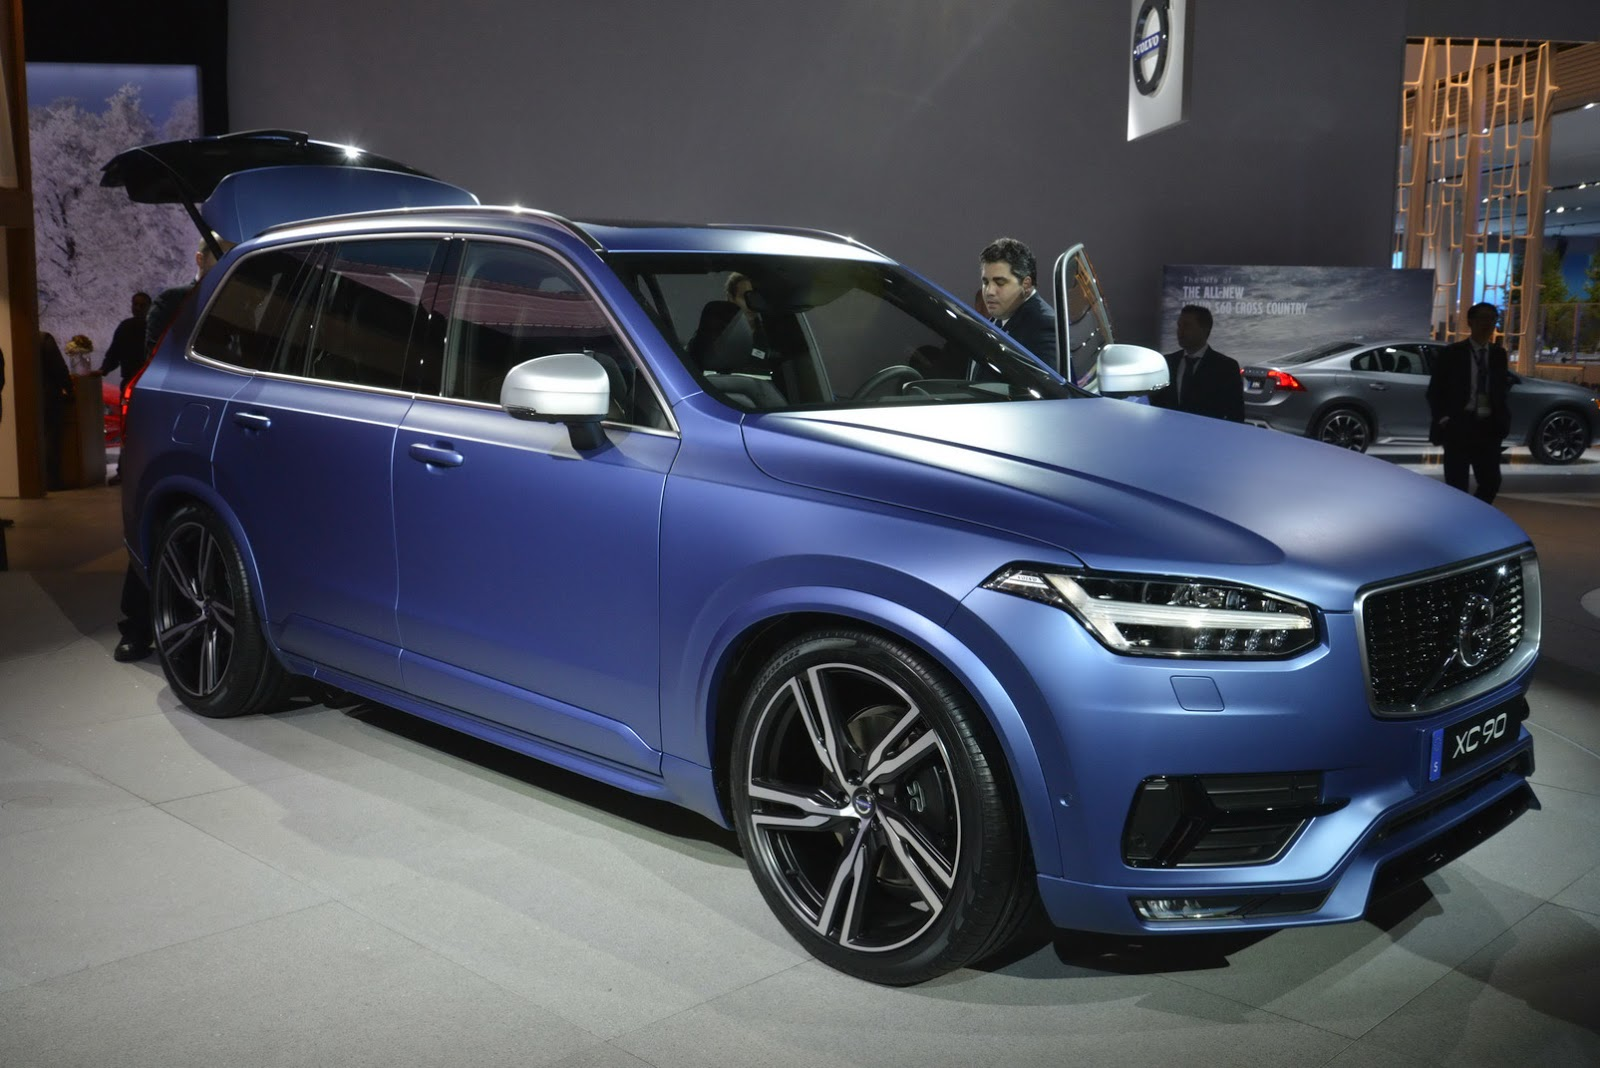 Volvo's 2016 XC90 R-Design Makes North American Debut in a Cool Matte ...: www.carscoops.com/2015/01/volvos-2016-xc90-r-design-makes-north.html